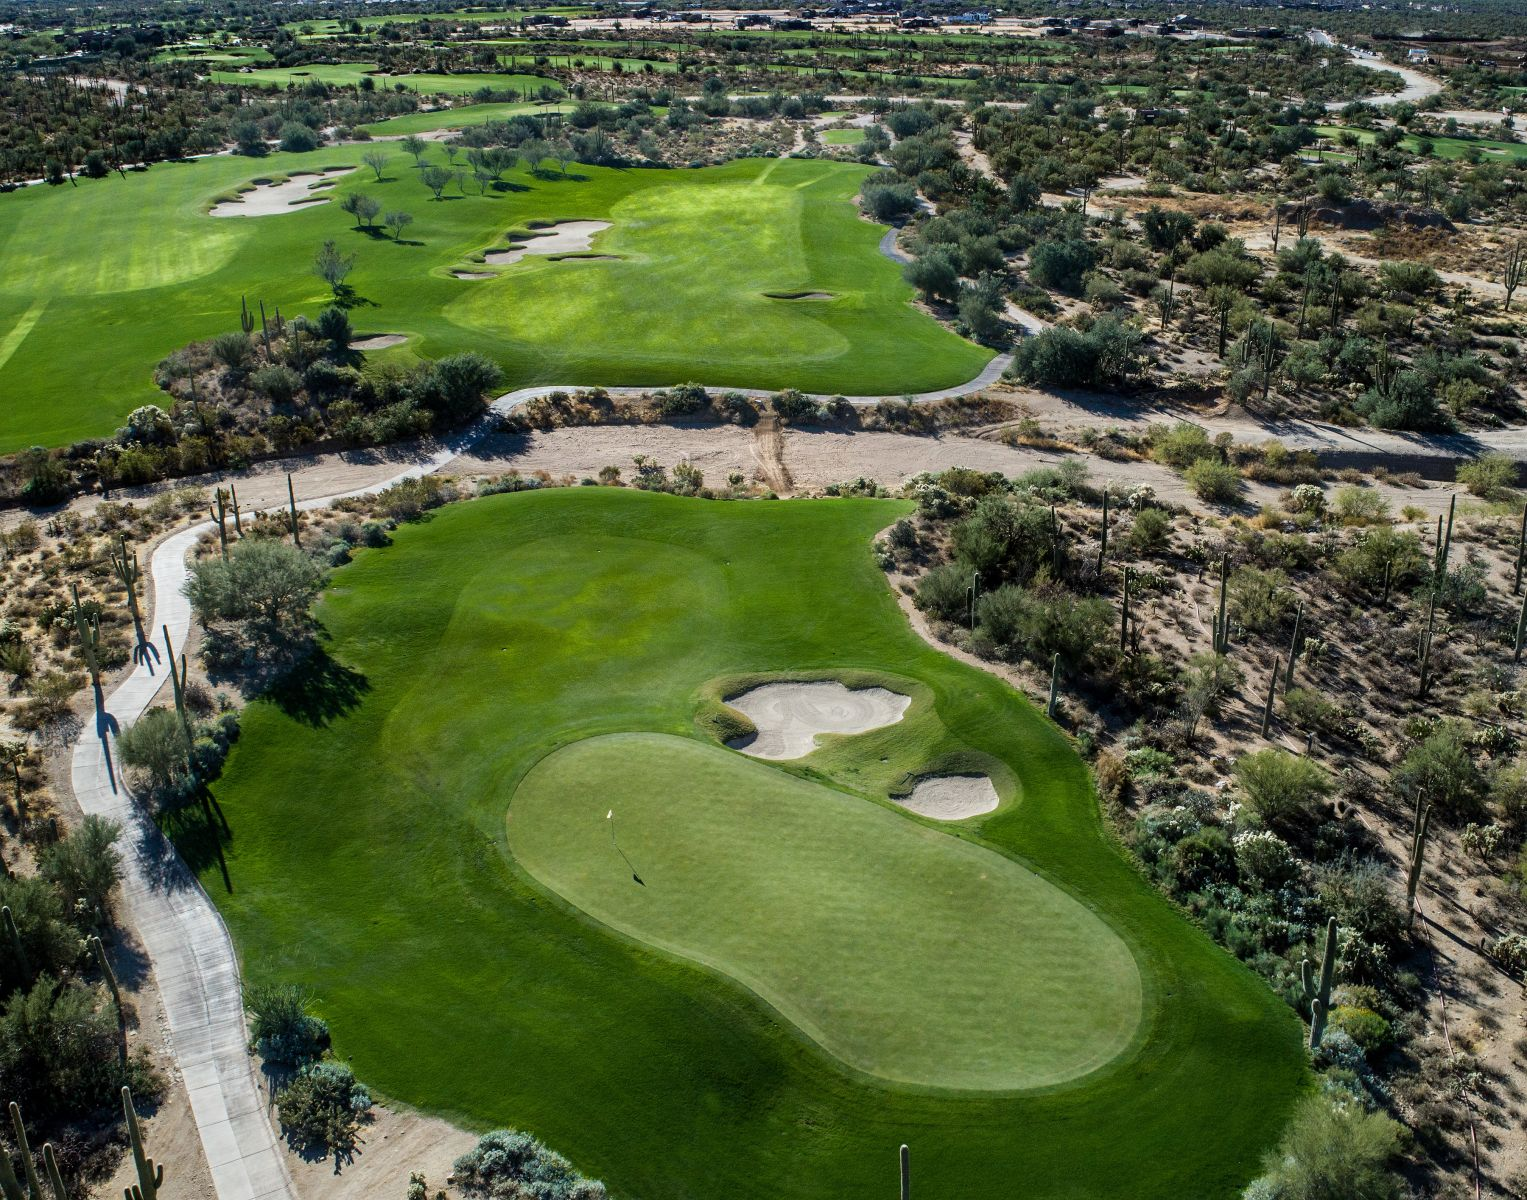 Aerial view of hole 5 on the Tortolita course